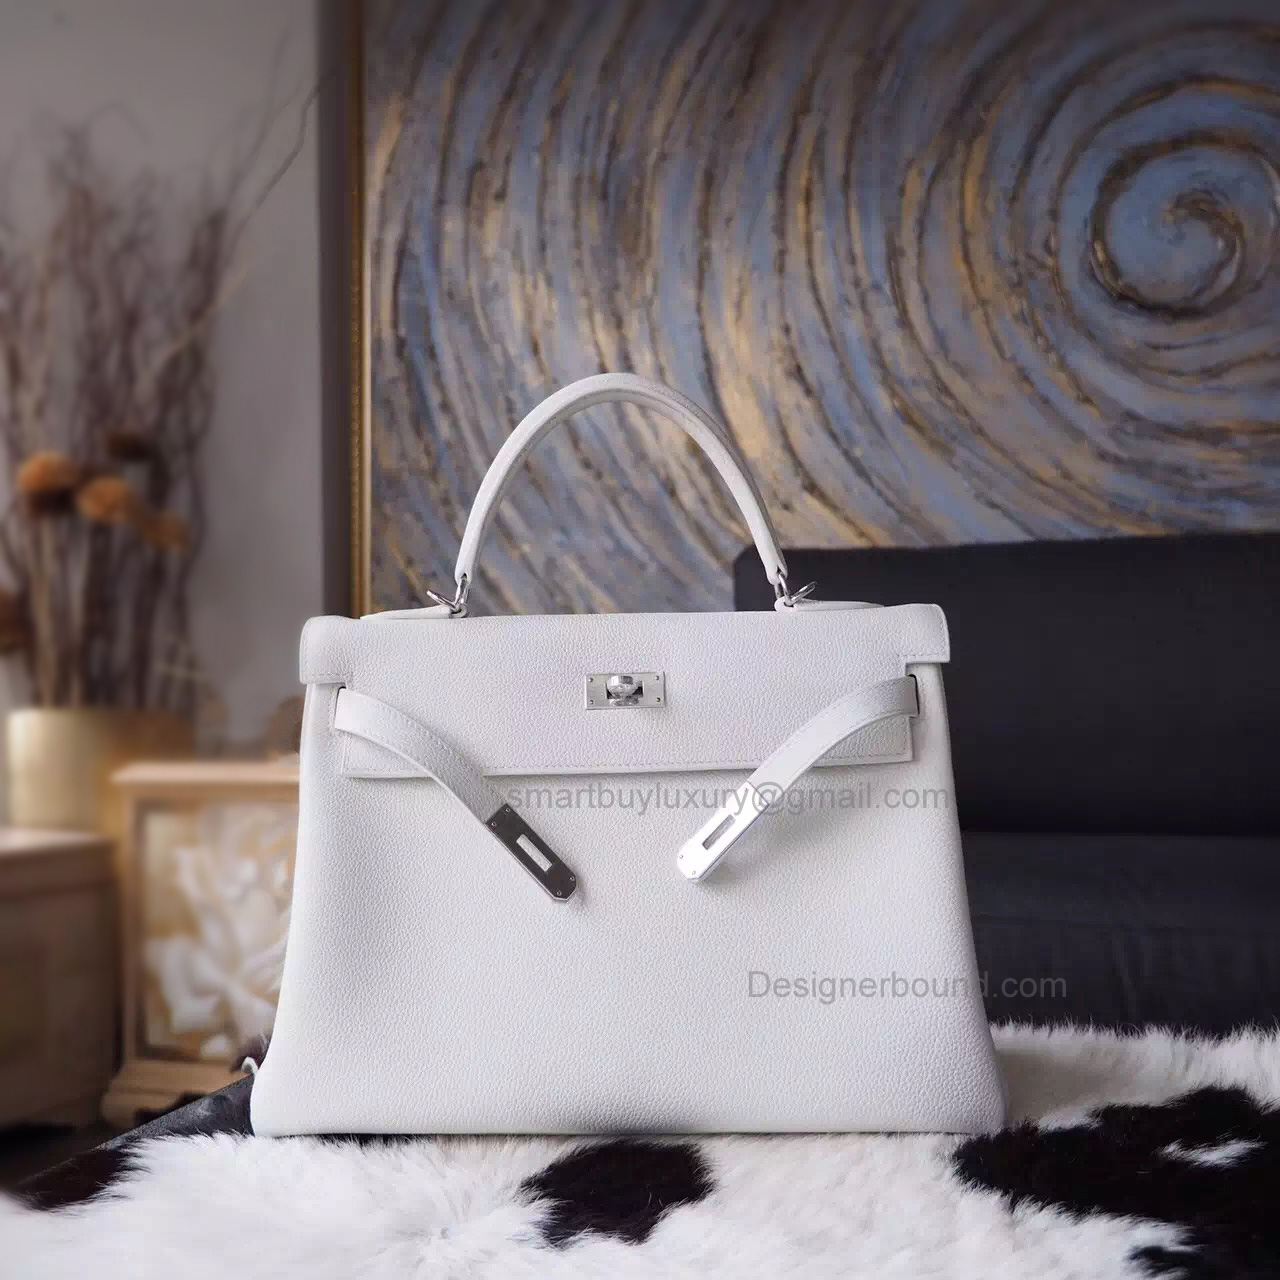 Hand Stitched Hermes Kelly 32 Copy Bag in cc01 Blanc Togo Calfskin PHW